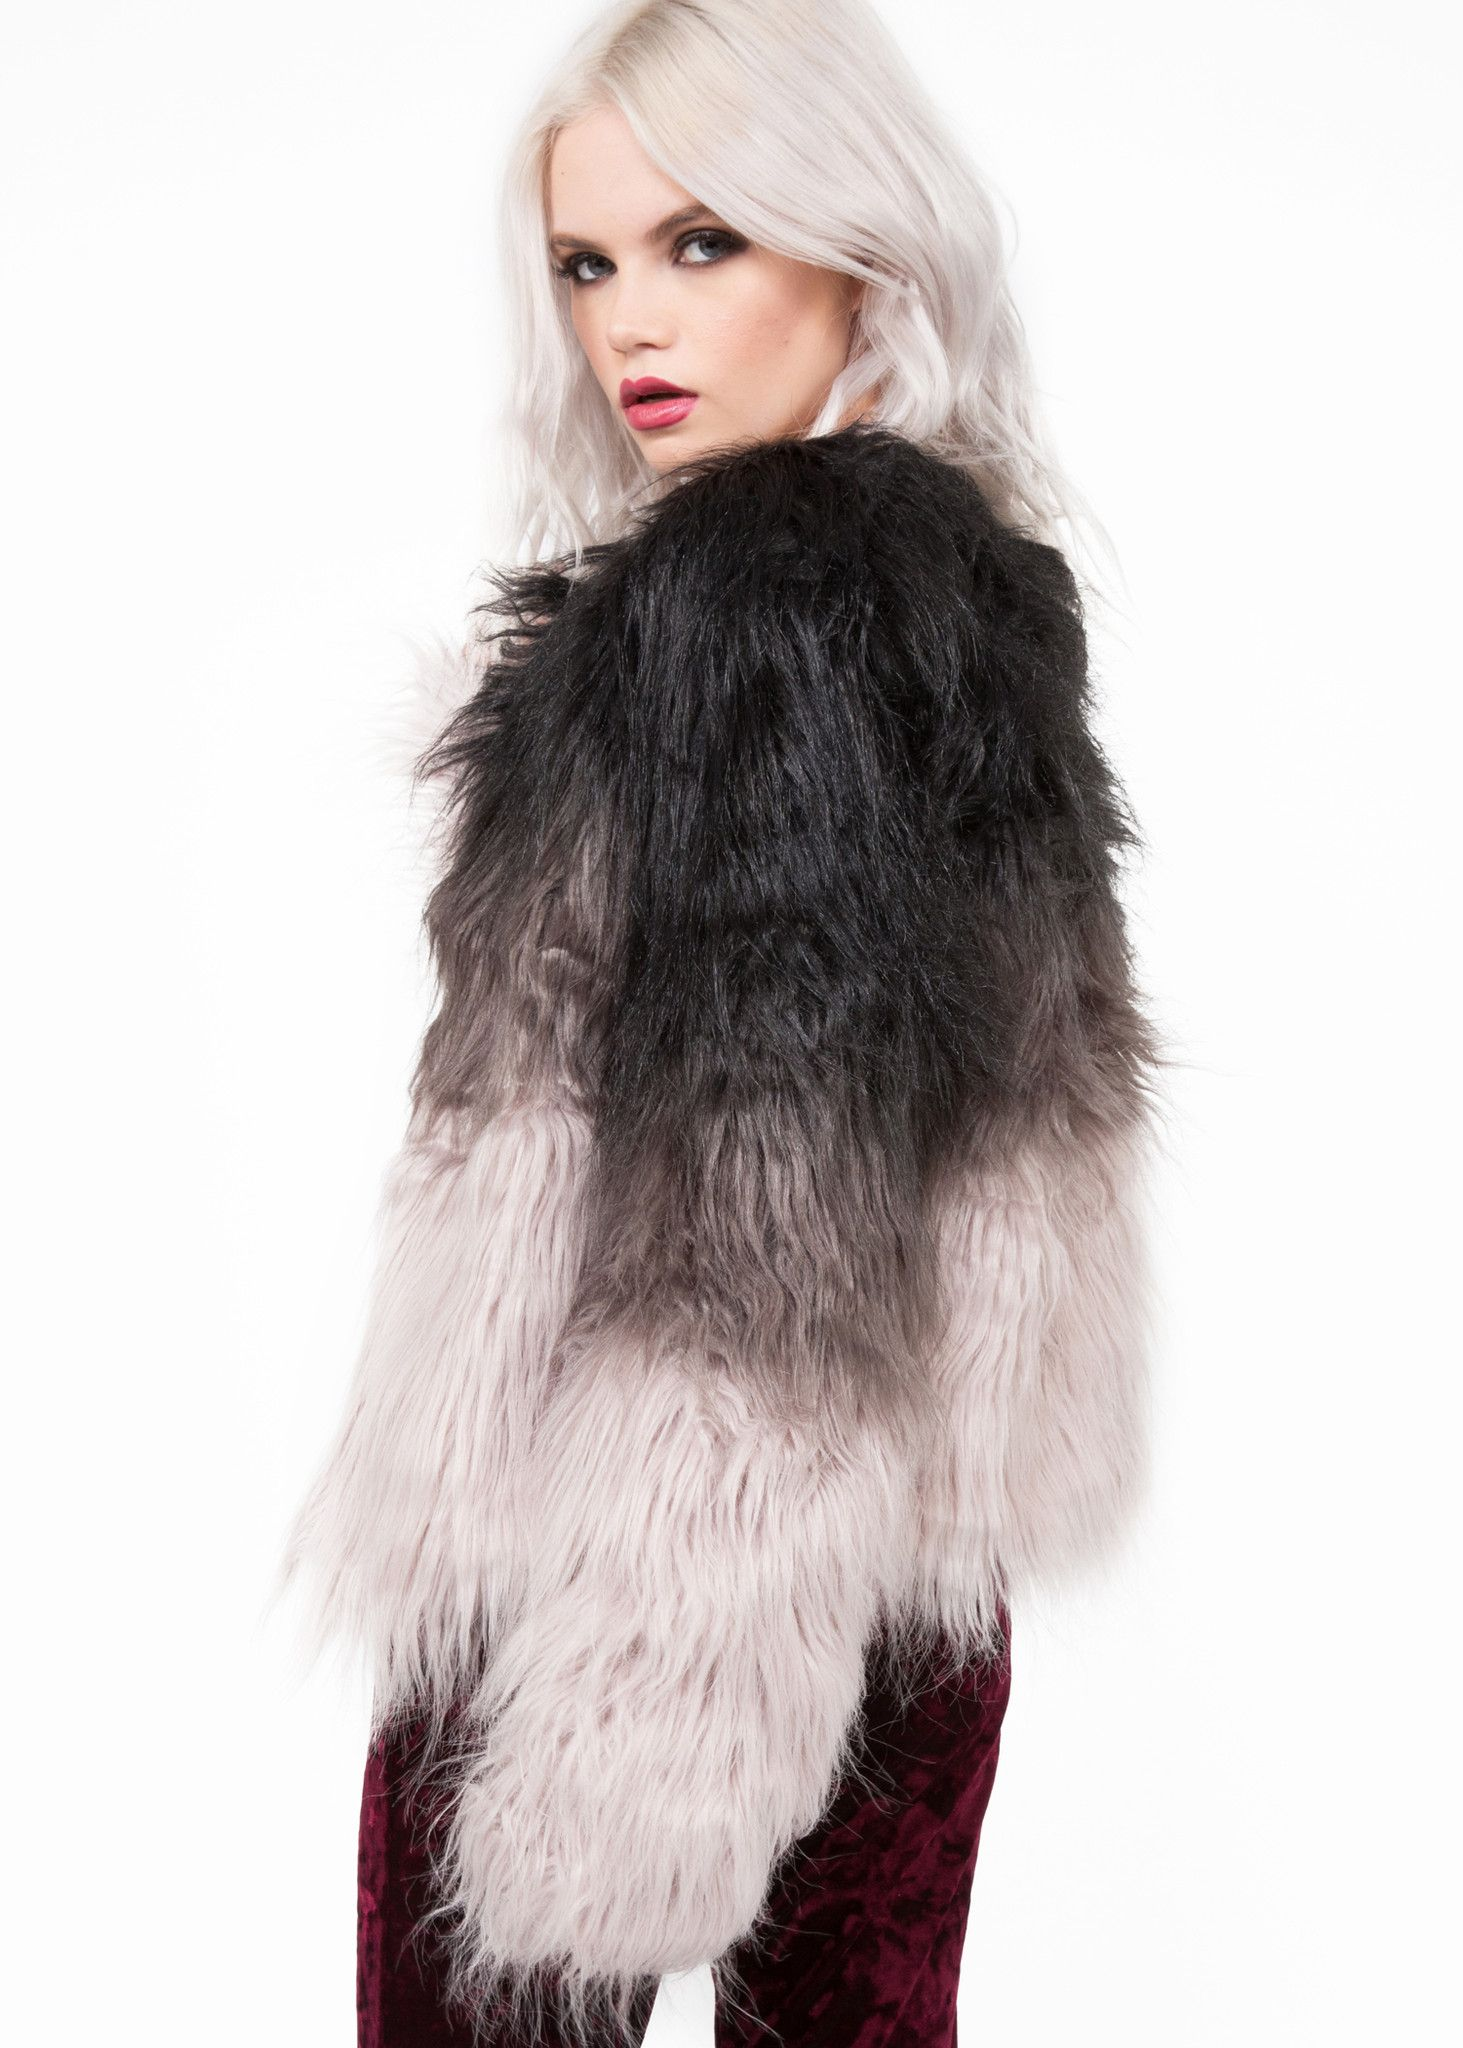 glam up any look with this rad faux fur jacket! it flaunts a